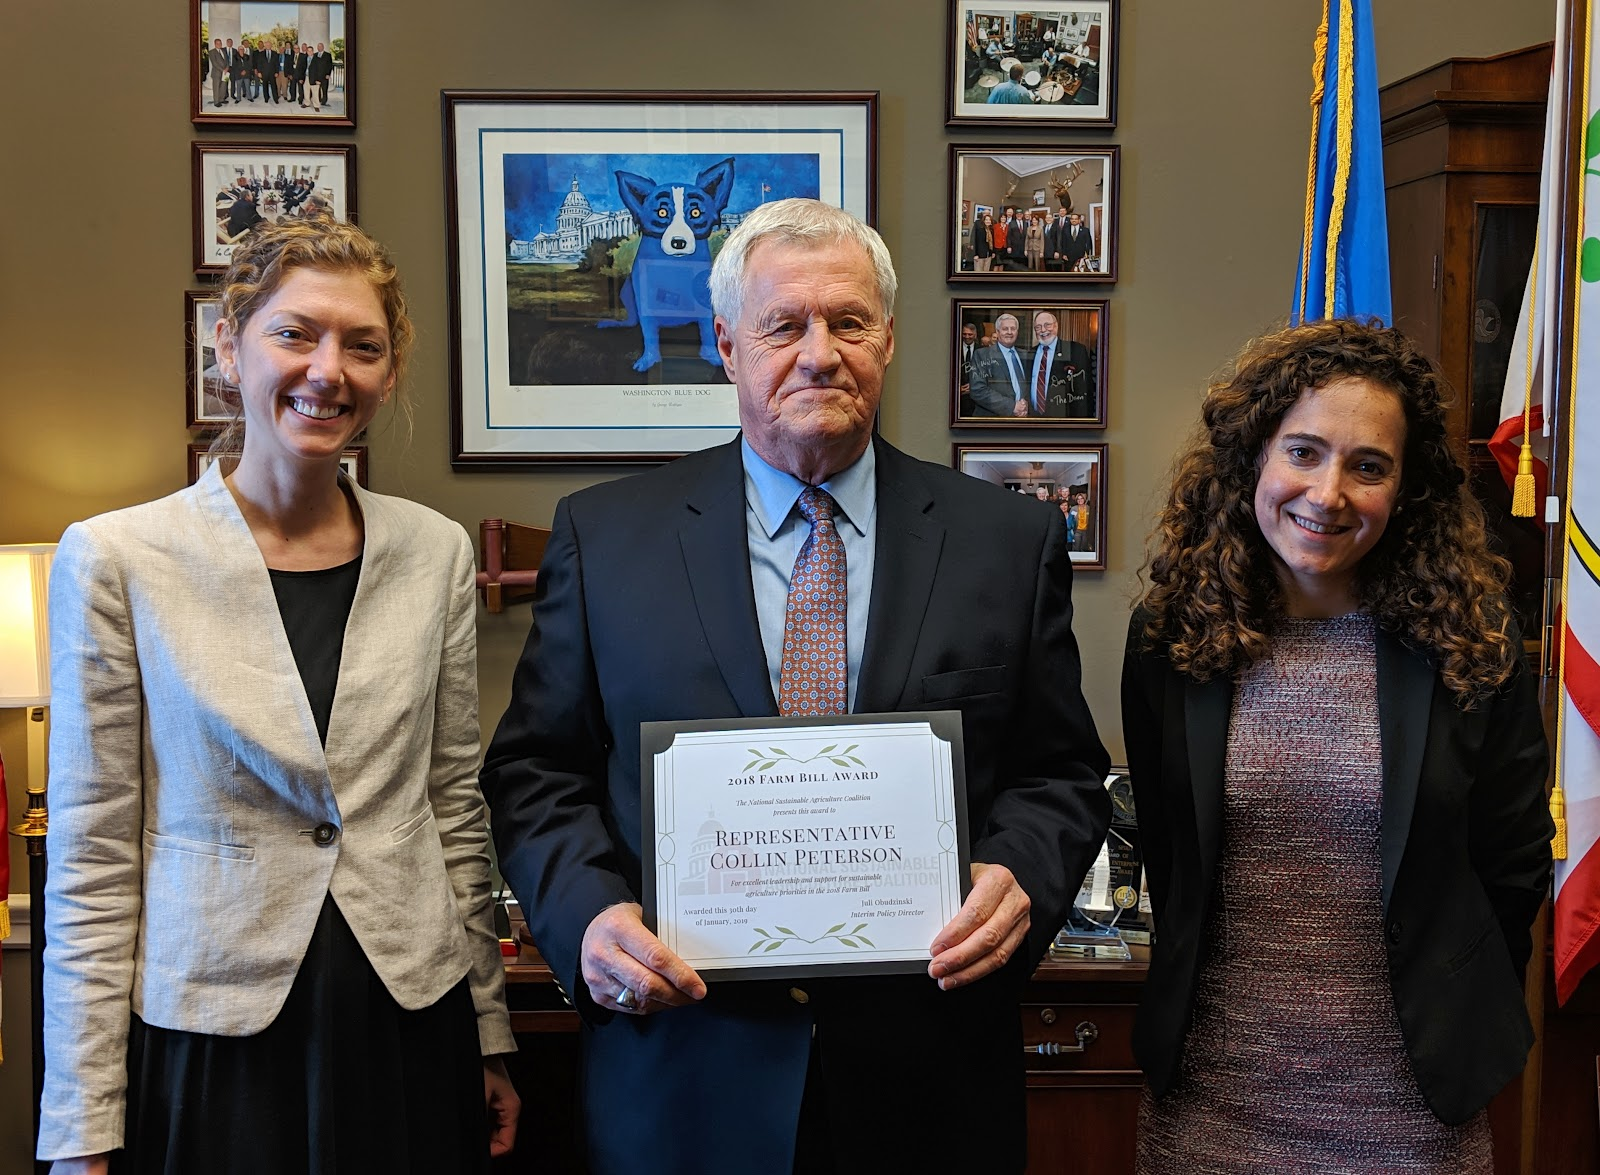 Representative Peterson (D-MN) - champion for bipartisan farm bill, is presented with a 2018 Farm Bill award by NSAC staff member Alyssa Charney, and NSAC Coalition member Tara Ritter with the Institute for Agriculture and Trade Policy